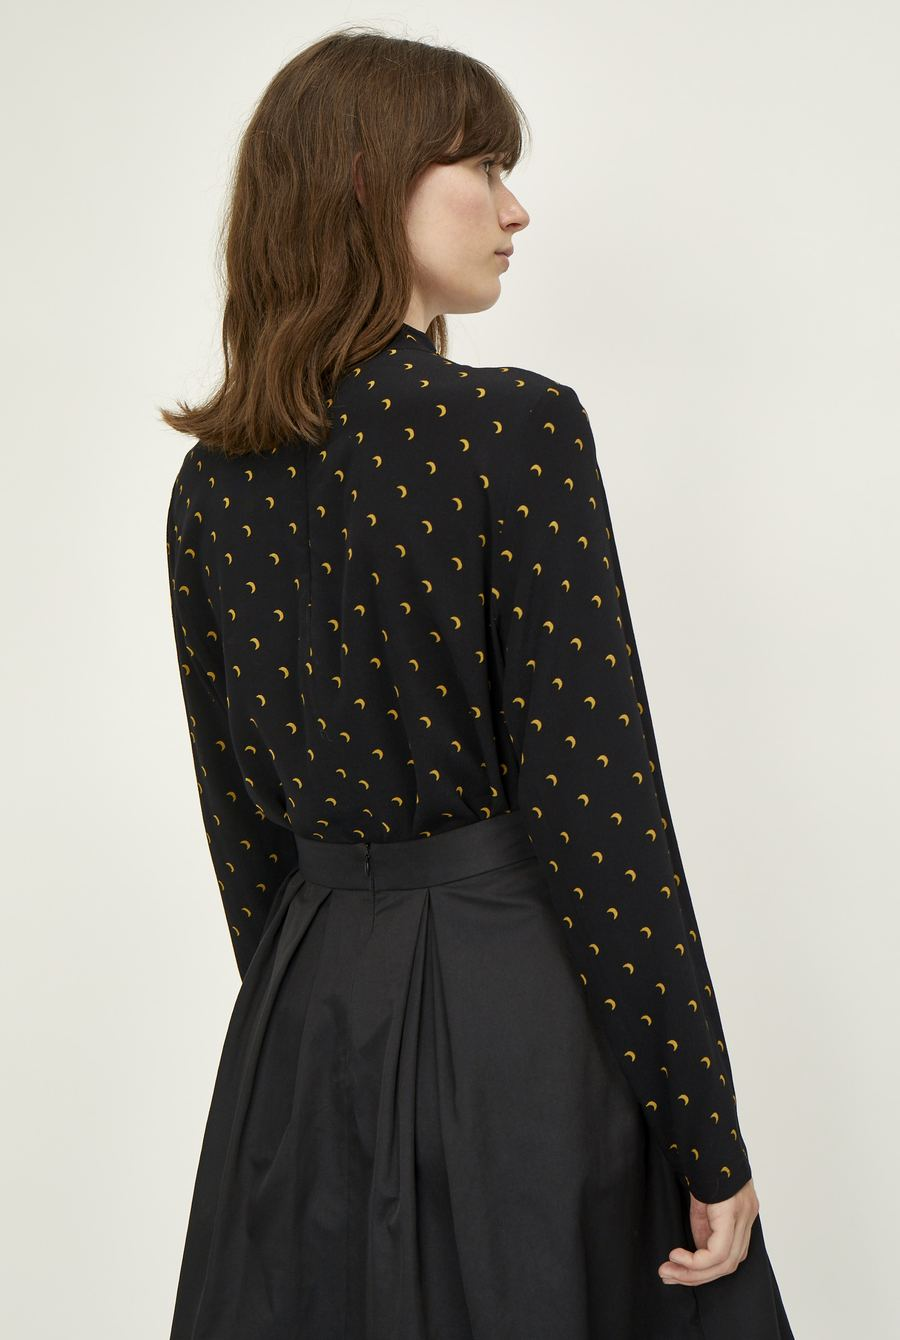 Cassia Blouse in Black